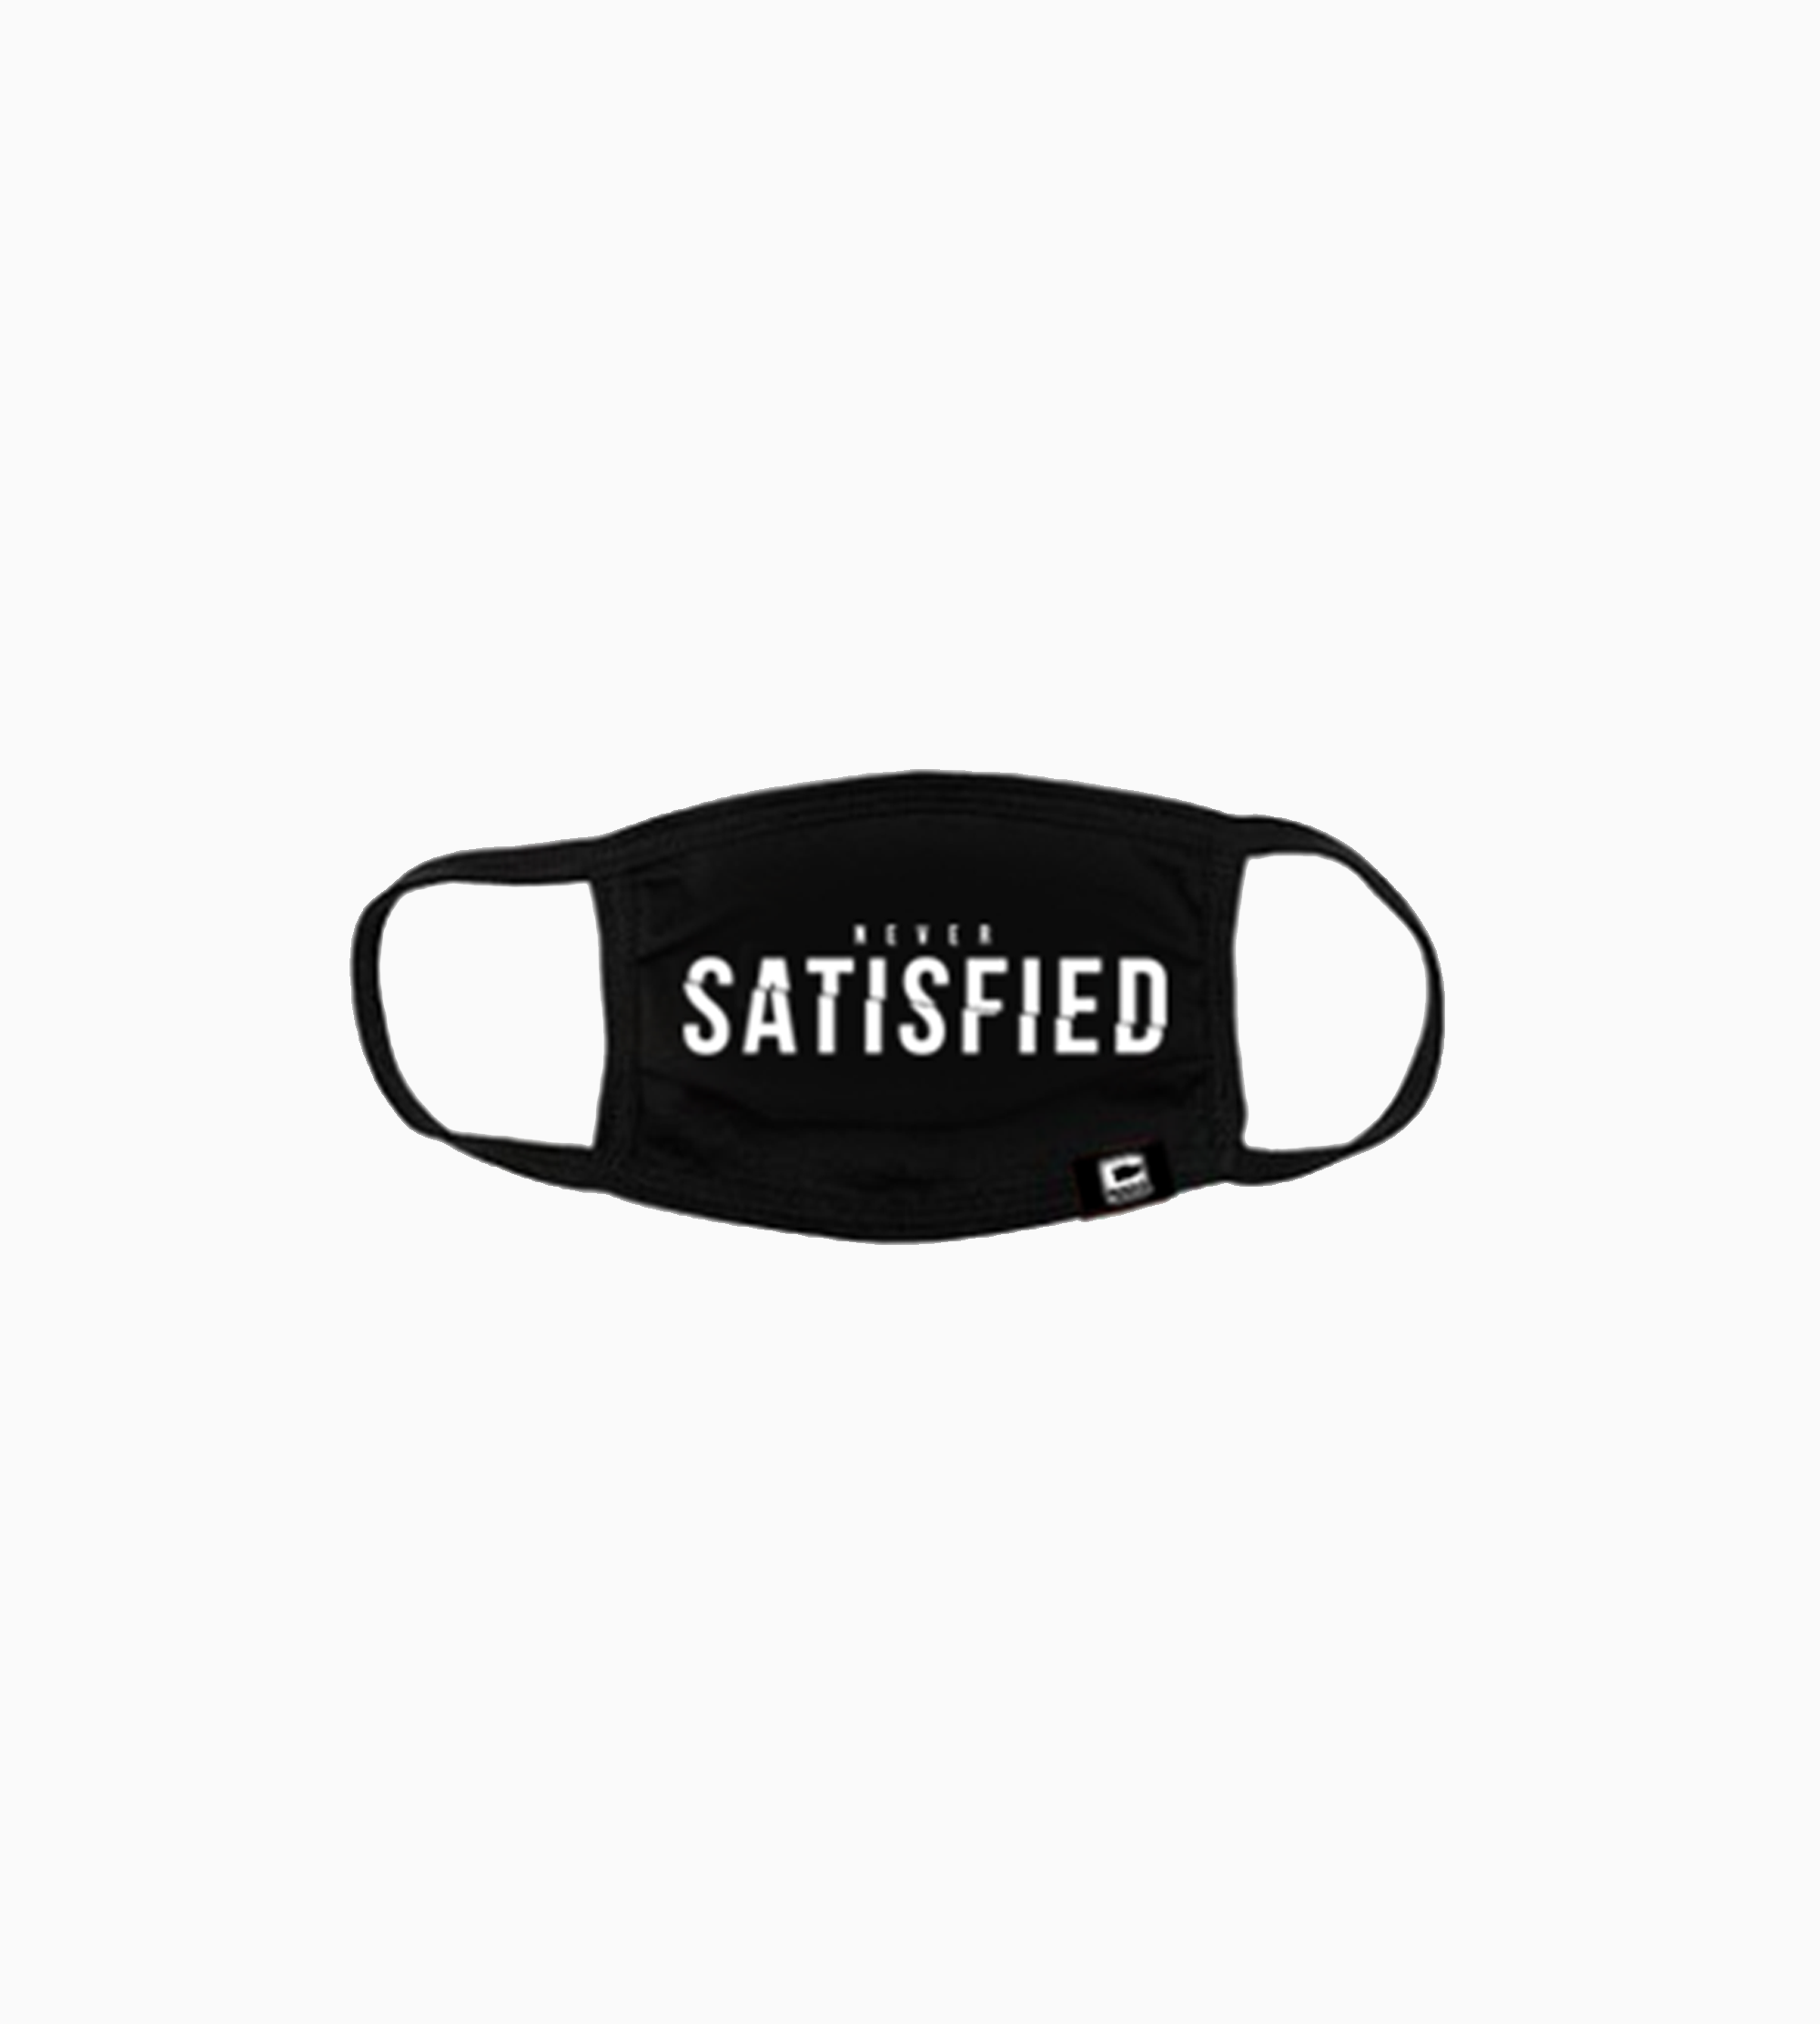 Never Satisfied Mask